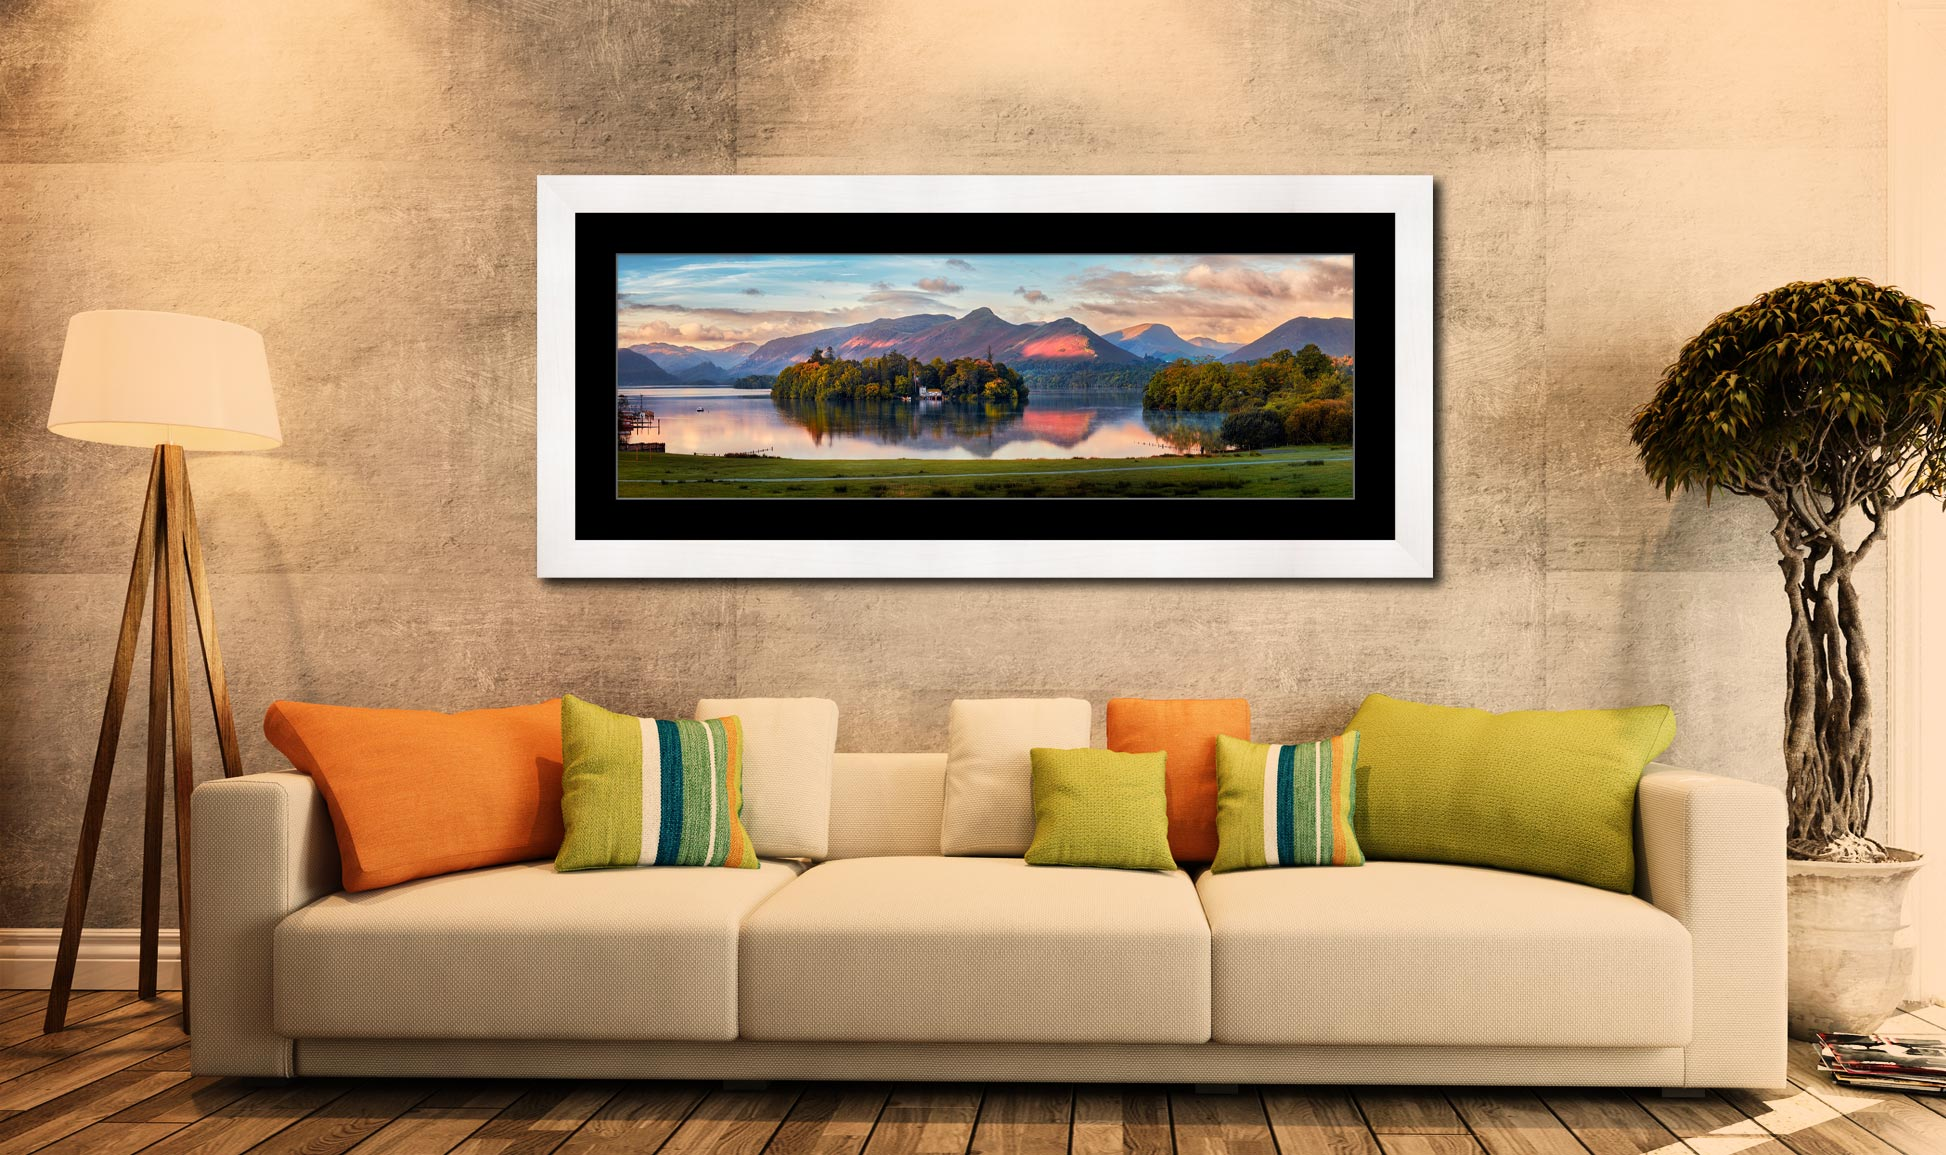 Derwent Water First Light - Framed Print with Mount on Wall